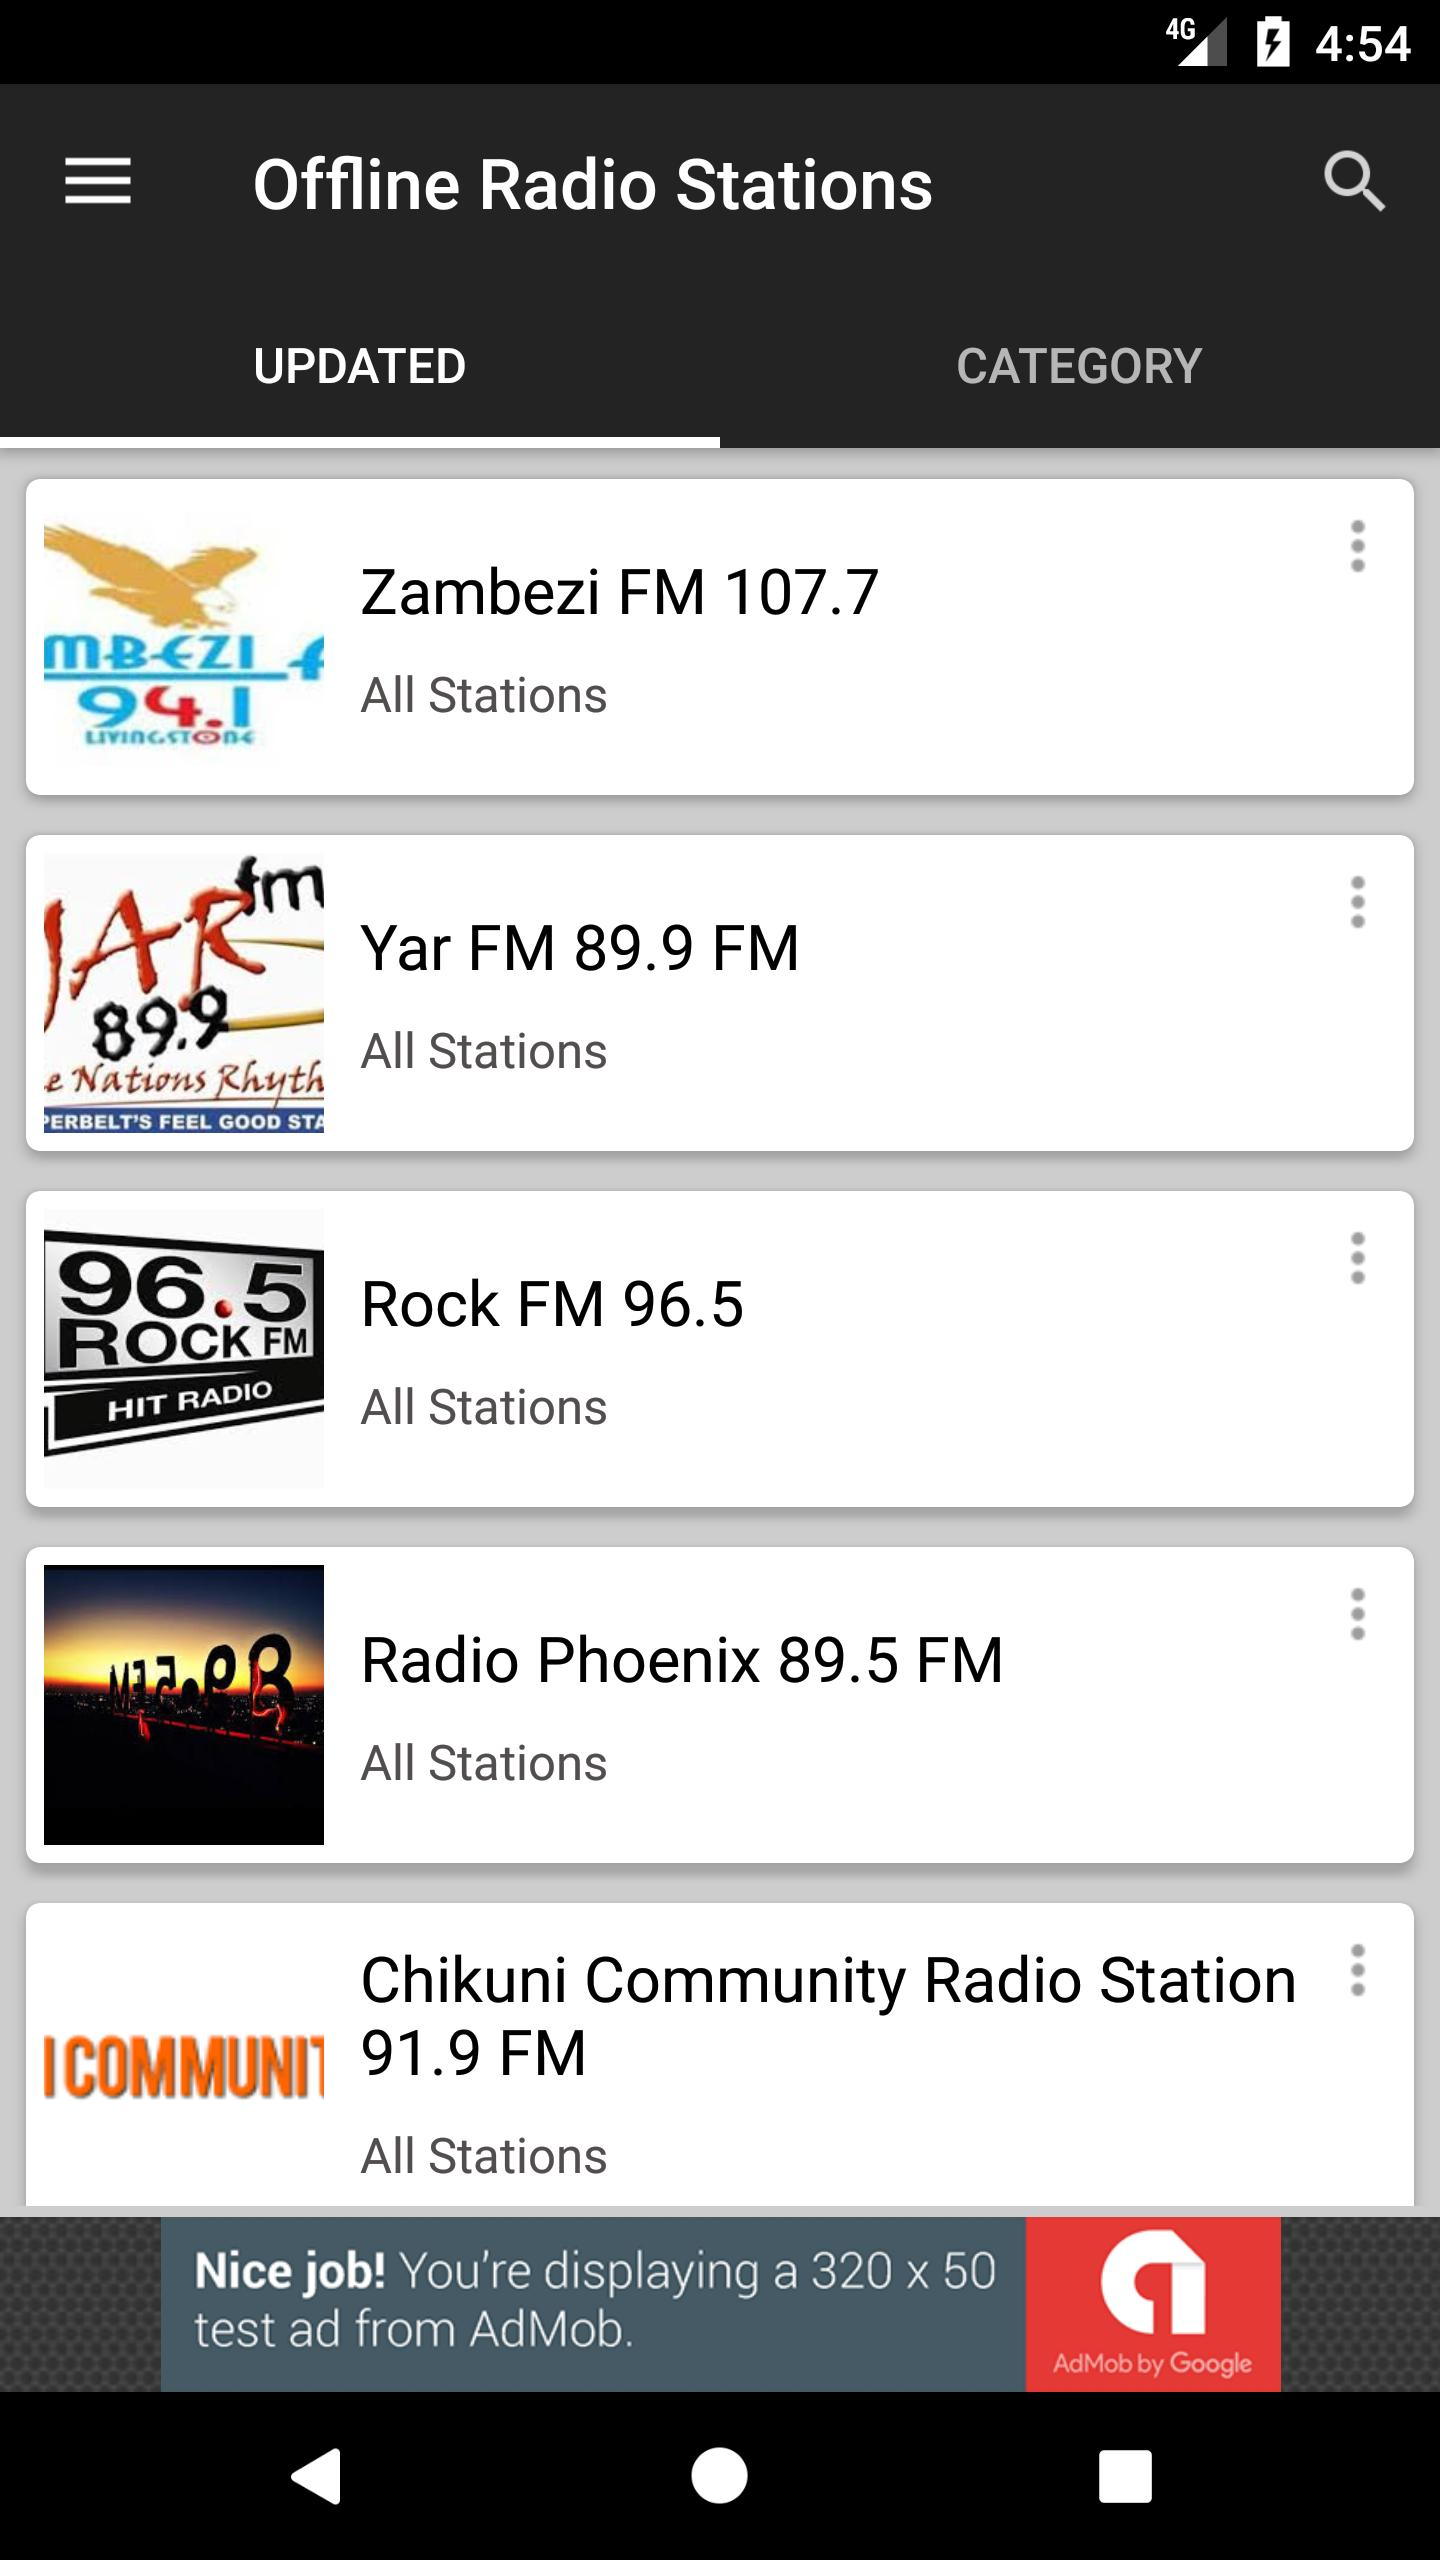 Offline Radio Stations for Android - APK Download